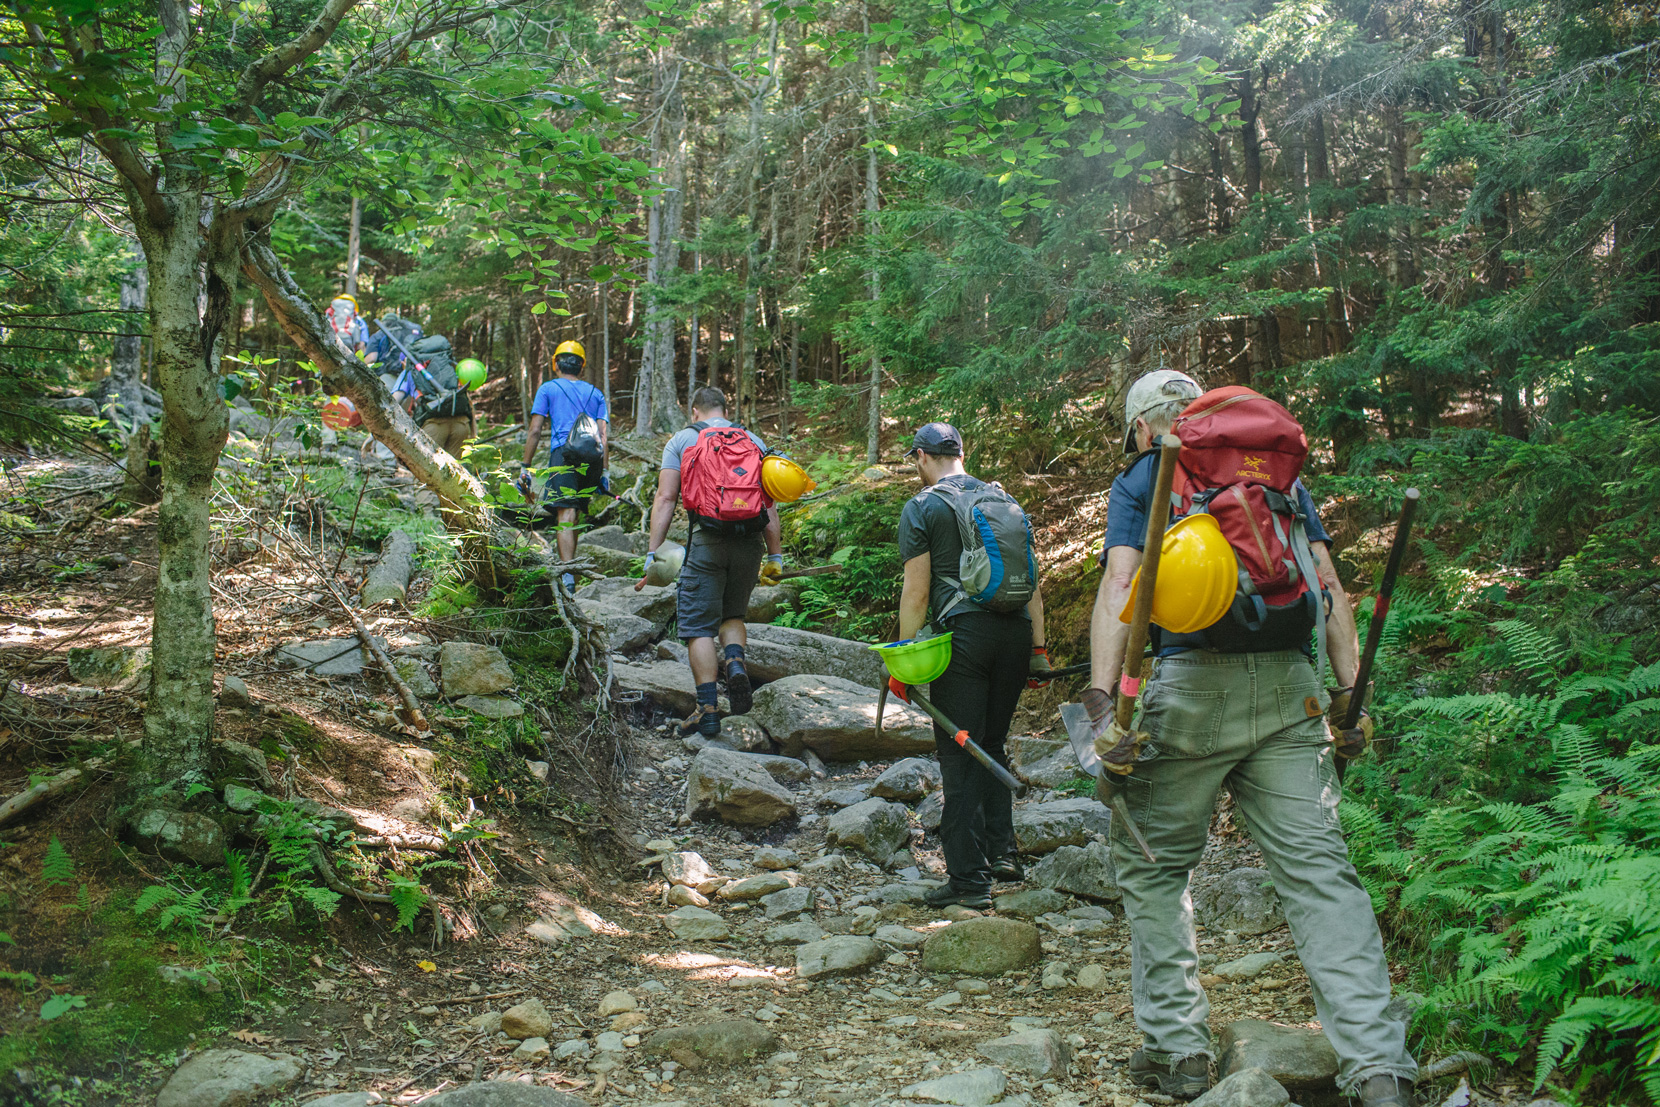 Volunteers hike in tools for trail restoration projects on Mount Monadnock